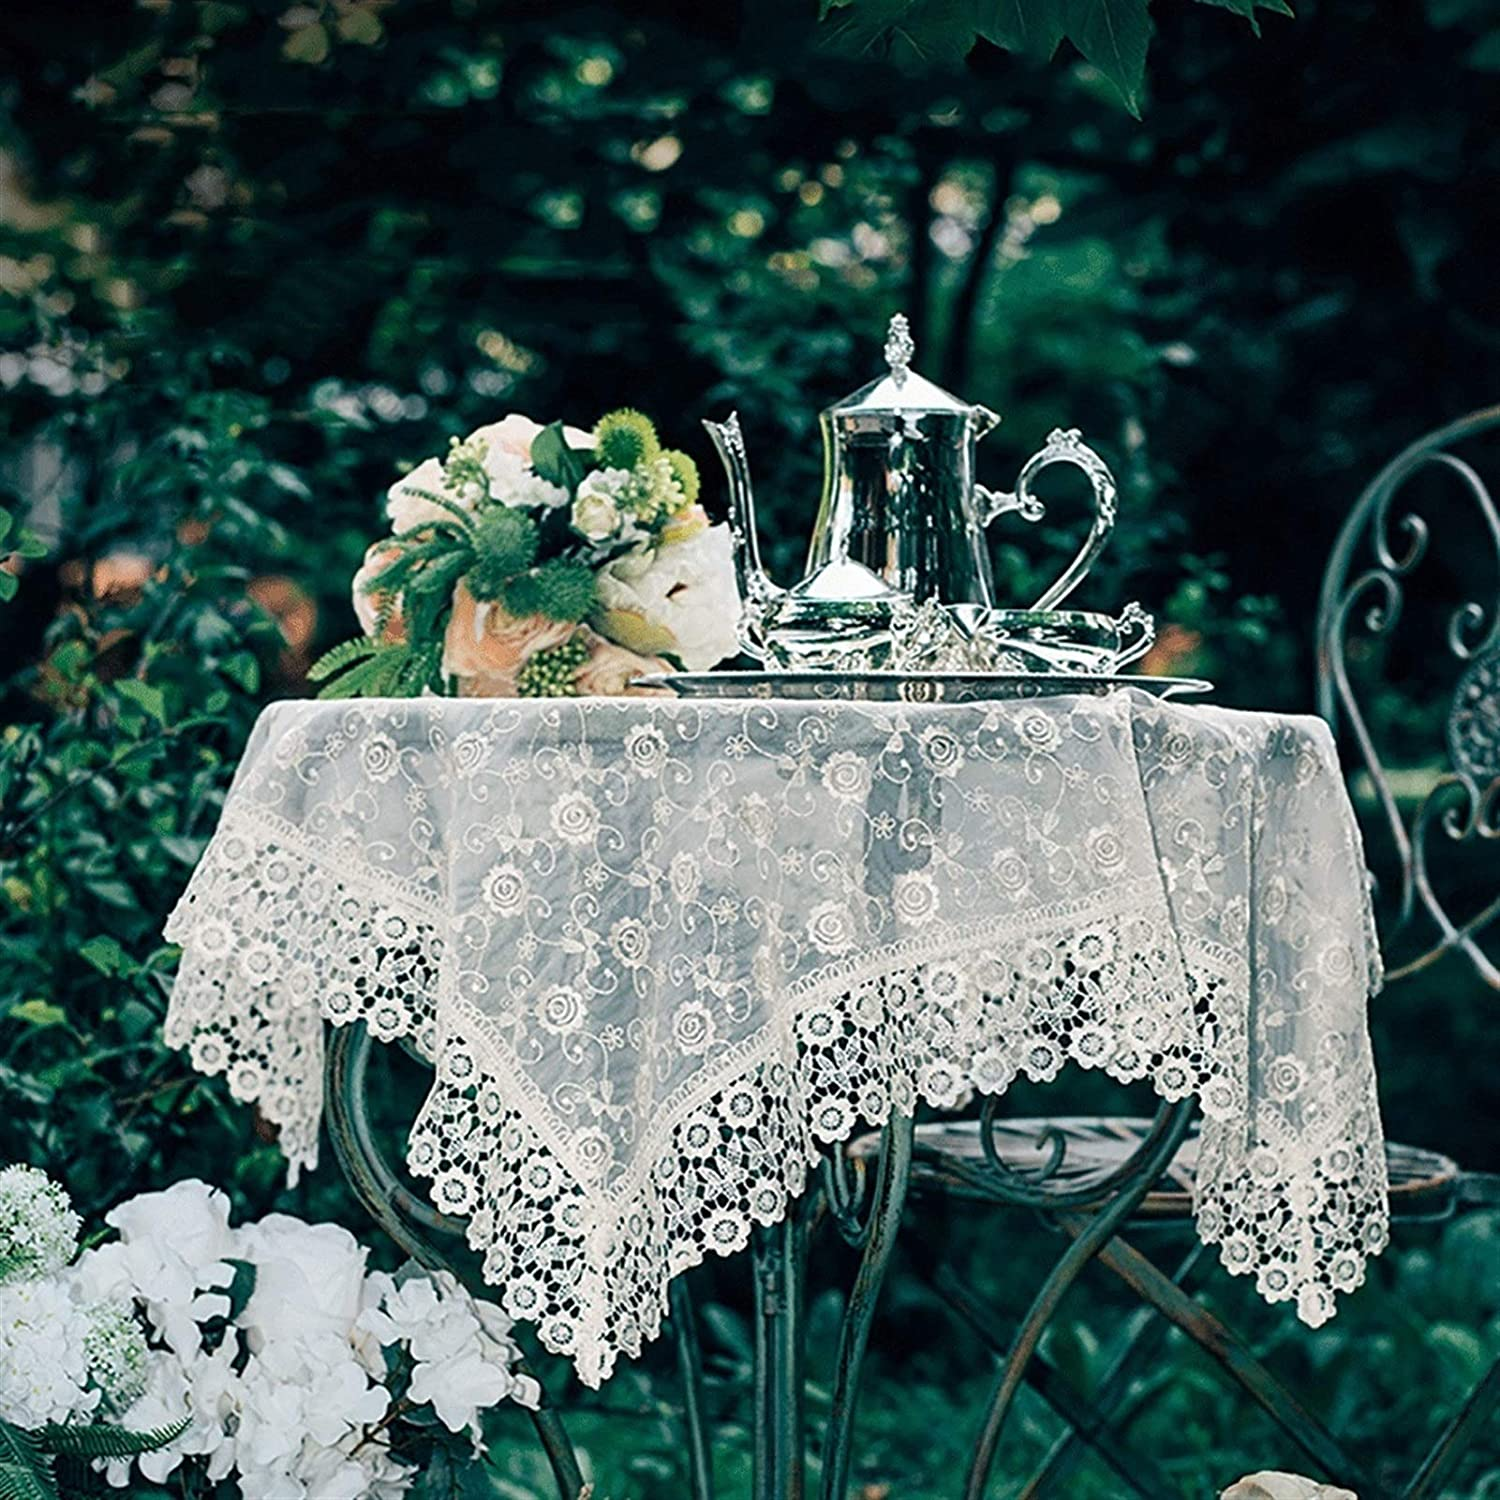 Rectangular Round Lace Regular discount Tablecloth G Inventory cleanup selling sale Tablecloths White